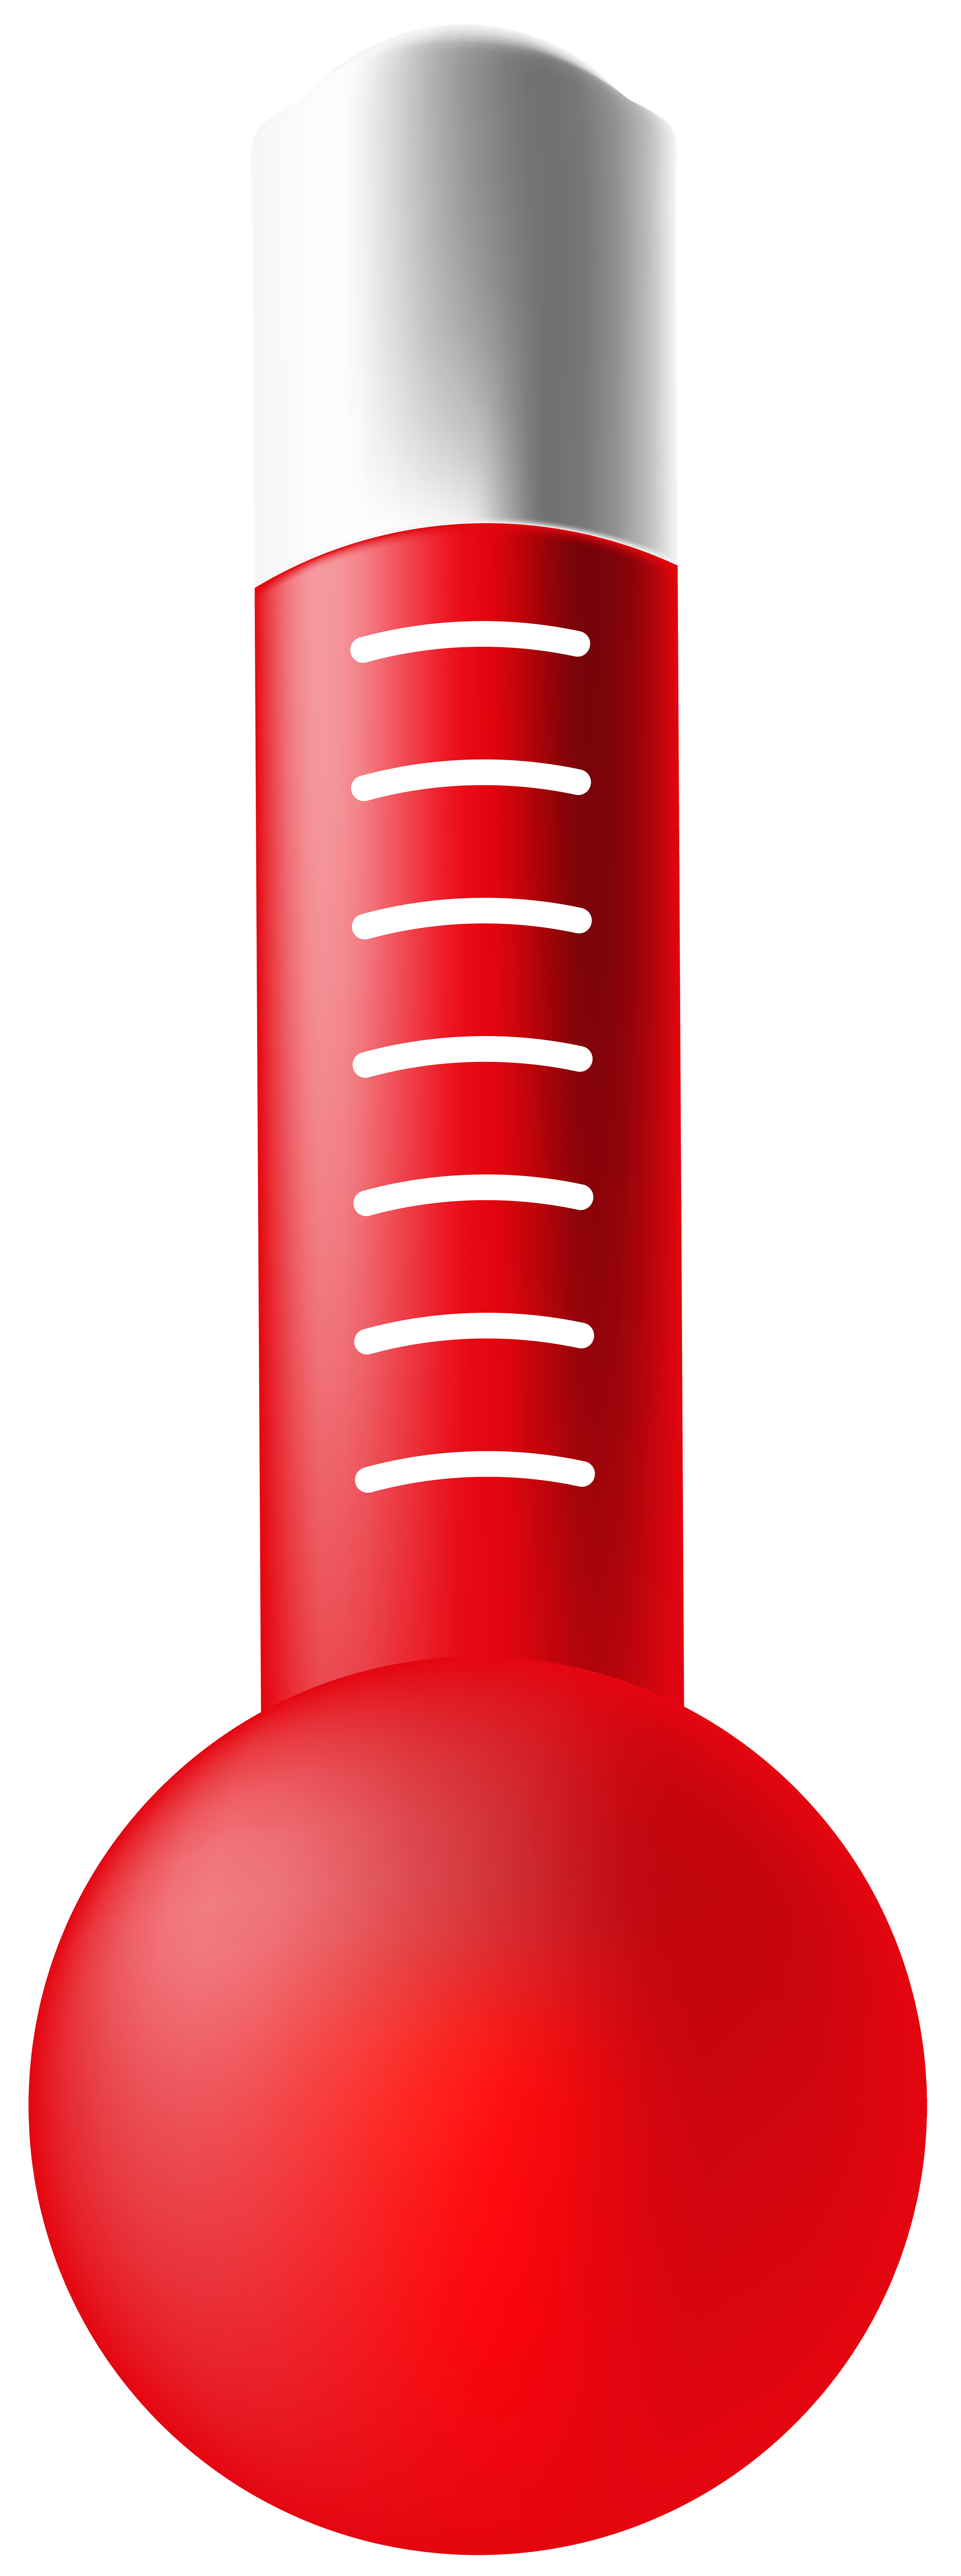 2985x8000 Hot Thermometer Weather Icon Png Clip Art